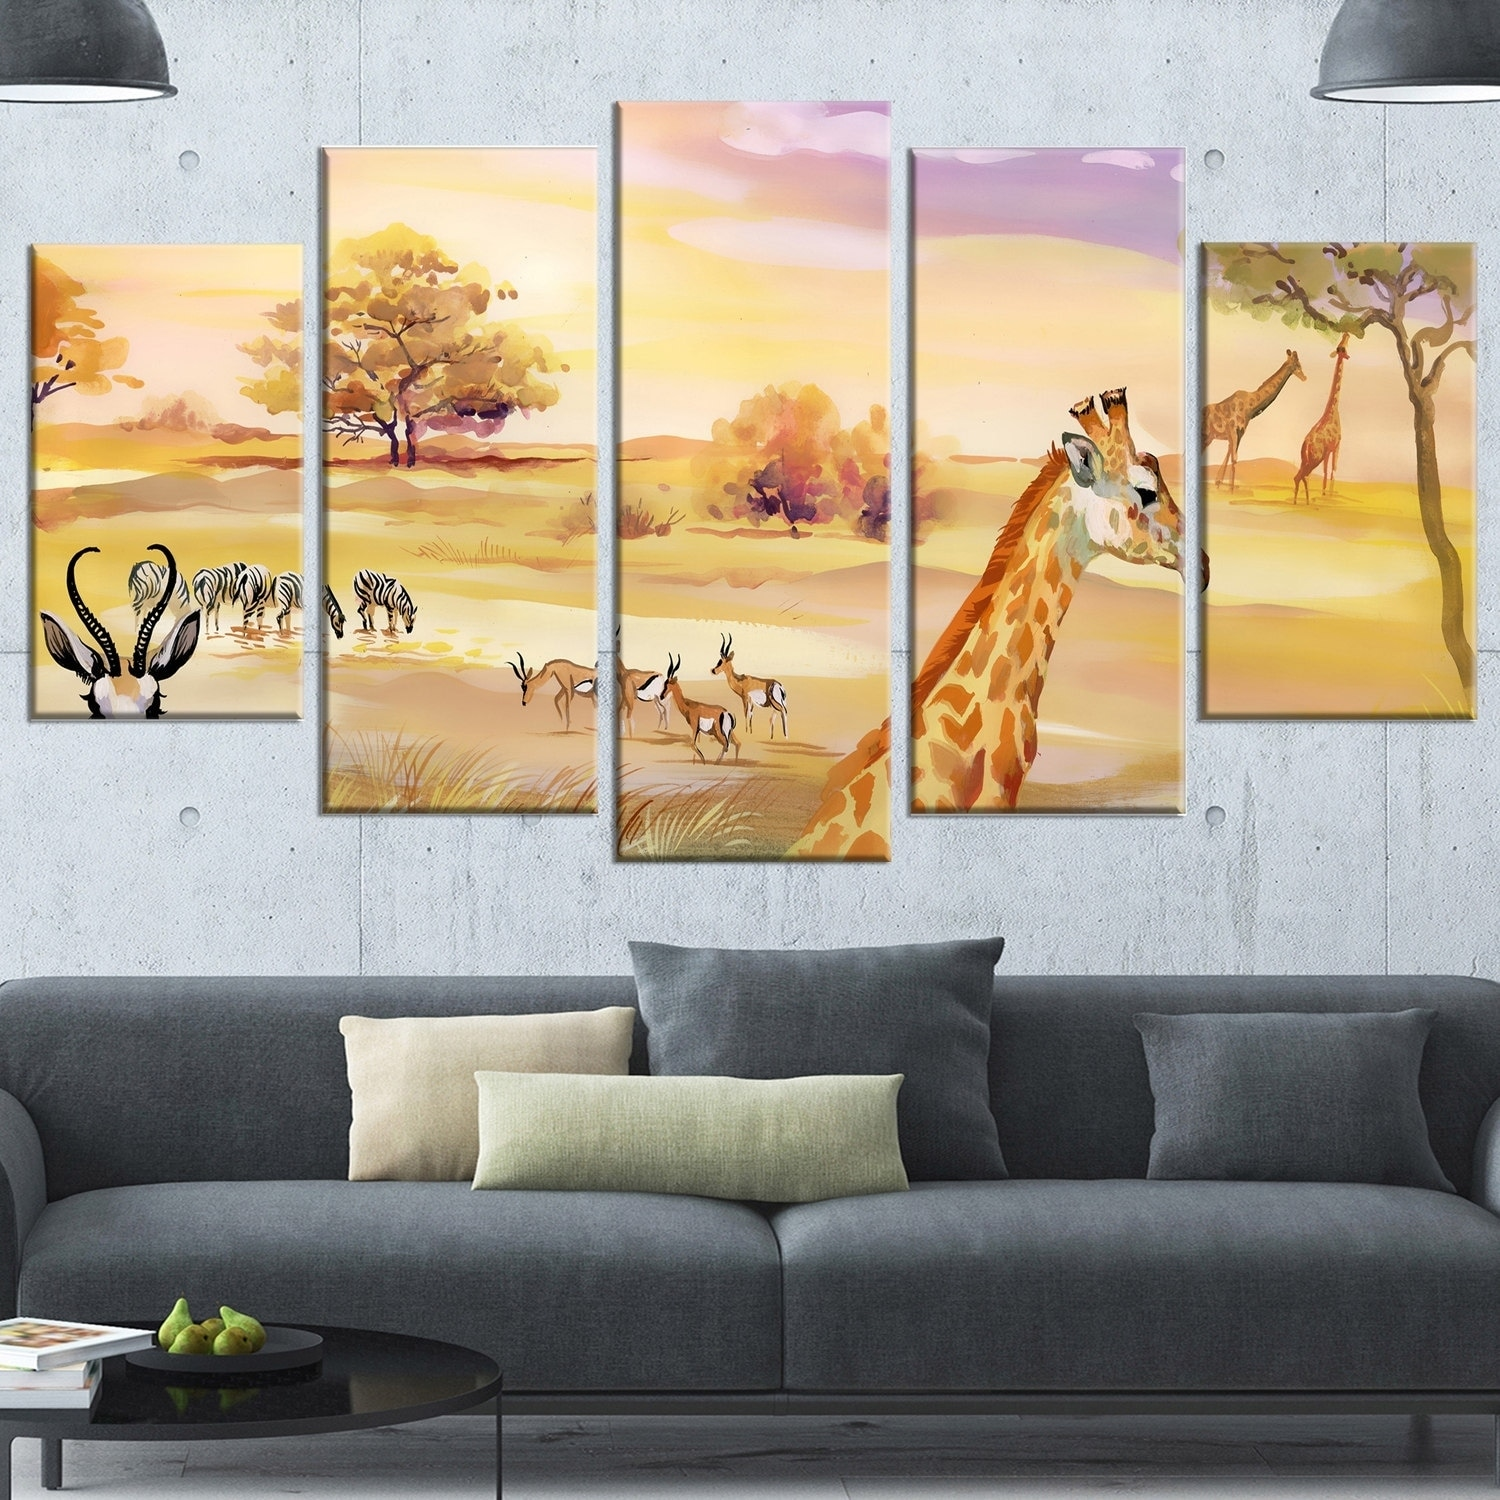 Outstanding Boston Wall Art Inspiration - The Wall Art Decorations ...